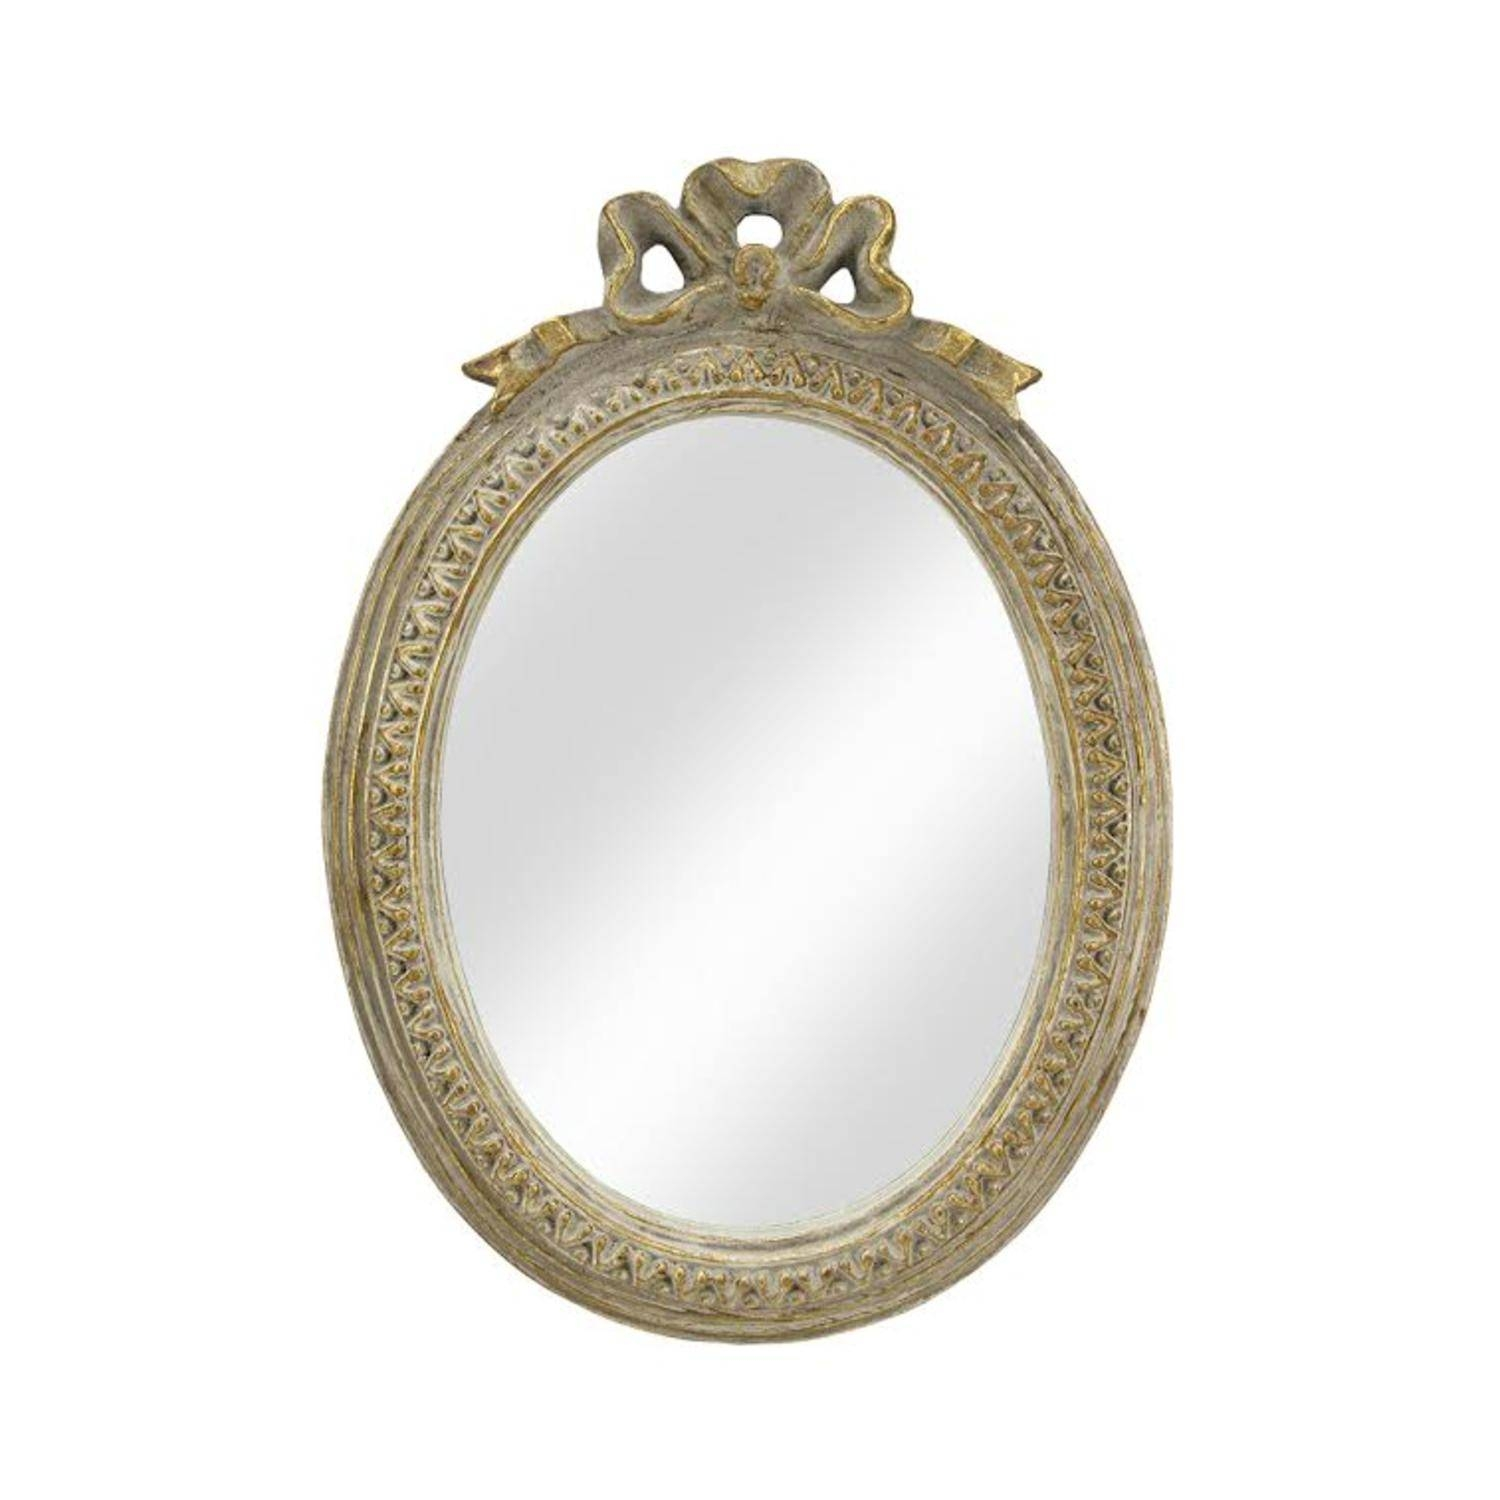 Oval Mirror intended for Large Oval Mirrors (Image 18 of 25)